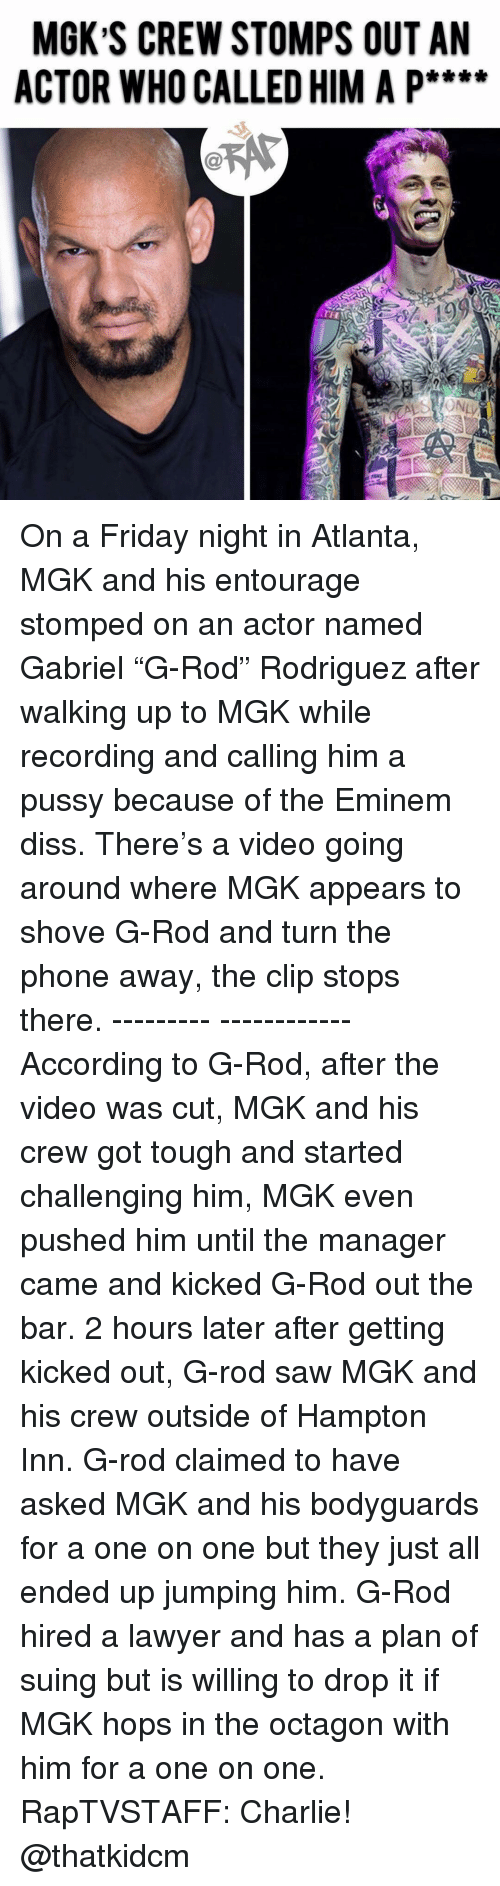 """hops: MGK S CREW STOMPS OUT AN  ACTOR WHO CALLED HIM A P**** On a Friday night in Atlanta, MGK and his entourage stomped on an actor named Gabriel """"G-Rod"""" Rodriguez after walking up to MGK while recording and calling him a pussy because of the Eminem diss. There's a video going around where MGK appears to shove G-Rod and turn the phone away, the clip stops there. --------- ------------According to G-Rod, after the video was cut, MGK and his crew got tough and started challenging him, MGK even pushed him until the manager came and kicked G-Rod out the bar. 2 hours later after getting kicked out, G-rod saw MGK and his crew outside of Hampton Inn. G-rod claimed to have asked MGK and his bodyguards for a one on one but they just all ended up jumping him. G-Rod hired a lawyer and has a plan of suing but is willing to drop it if MGK hops in the octagon with him for a one on one. RapTVSTAFF: Charlie! @thatkidcm"""